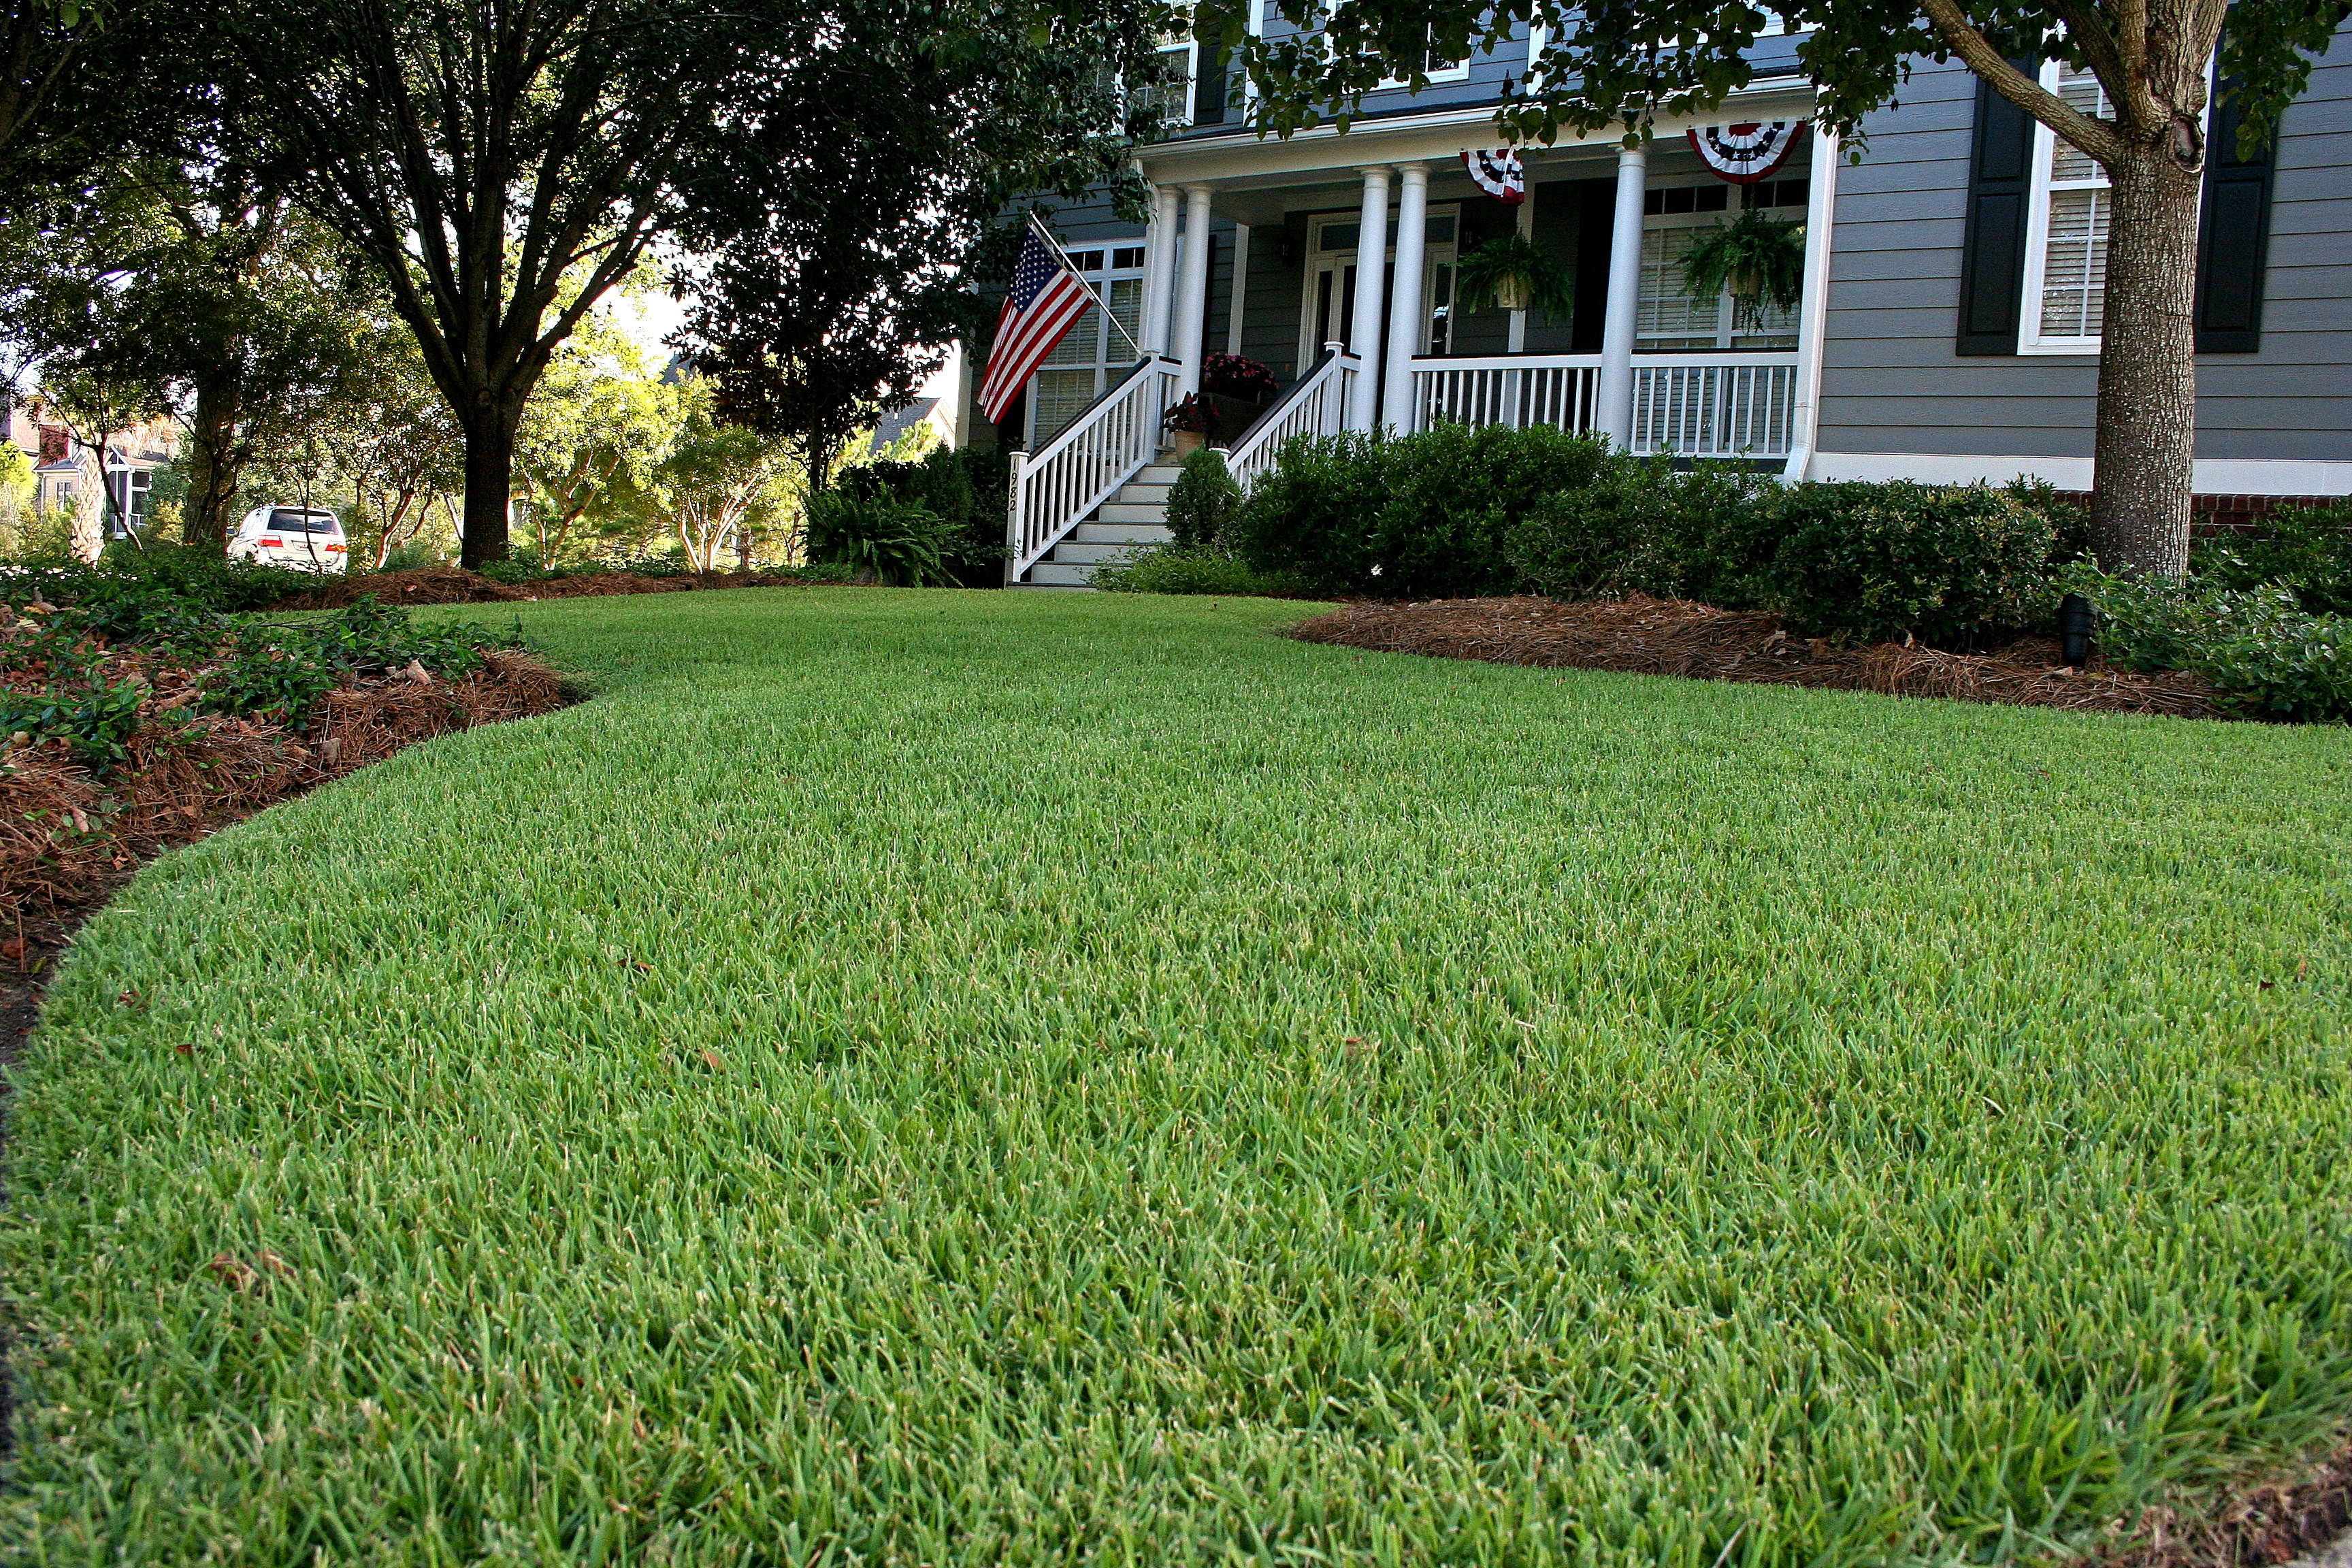 Charleston Residential Landscape Design - Empire Zoysia